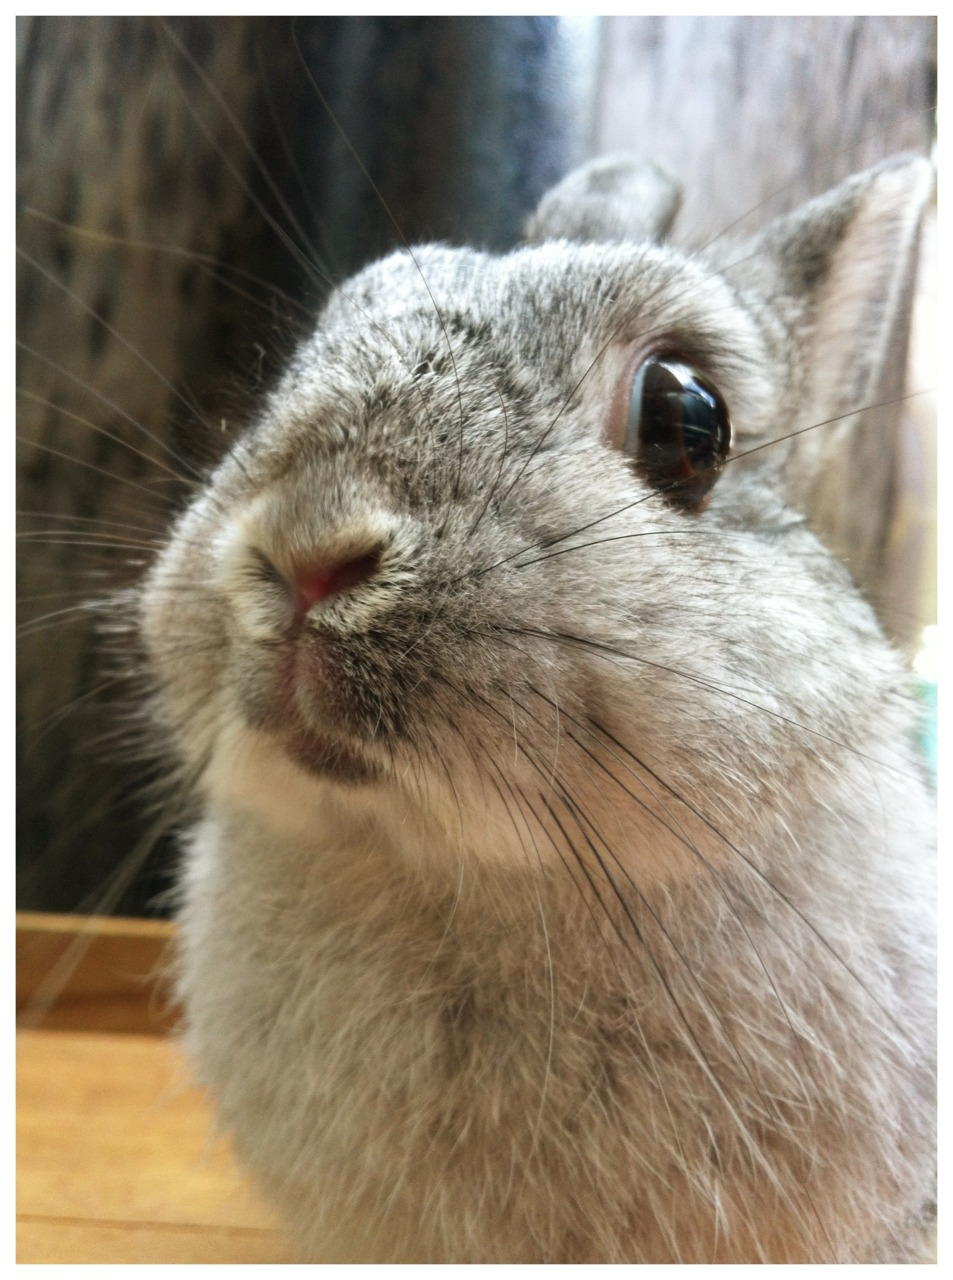 Bunny Looks Inquisitive